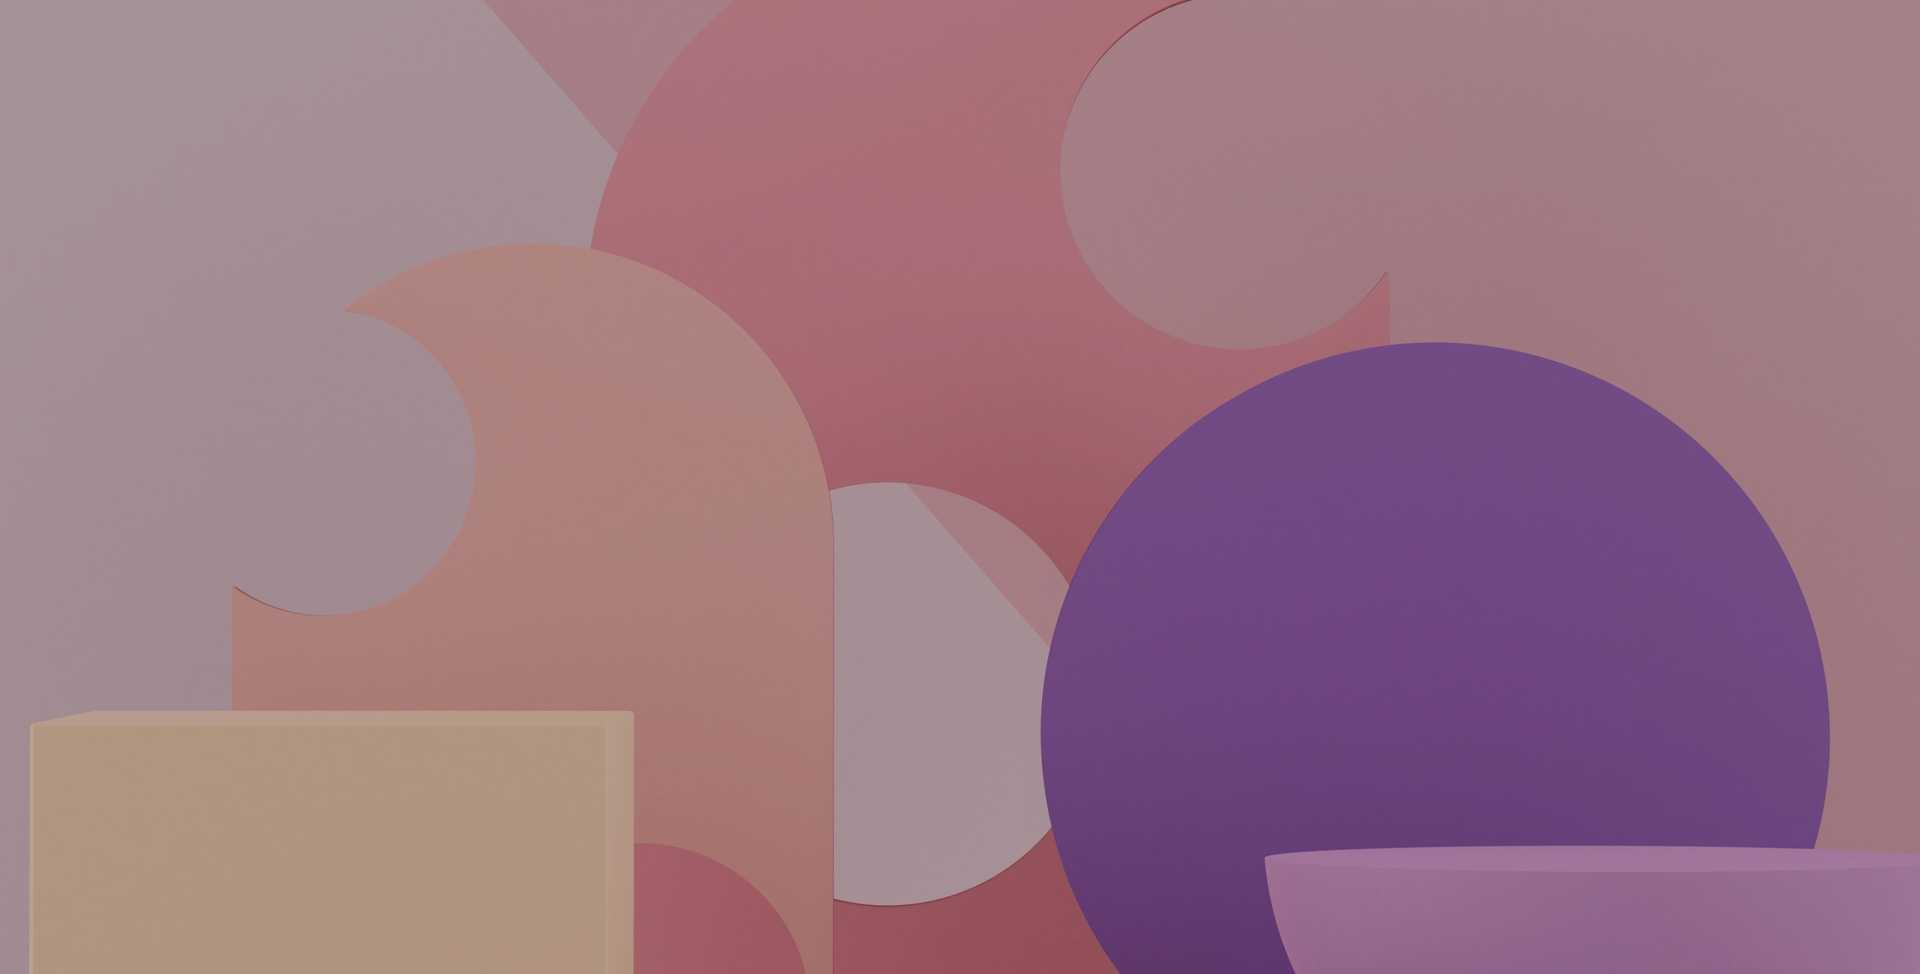 Abstract rendering of diverse circular and angular shapes in shades of pink and purple representing different time management techniques